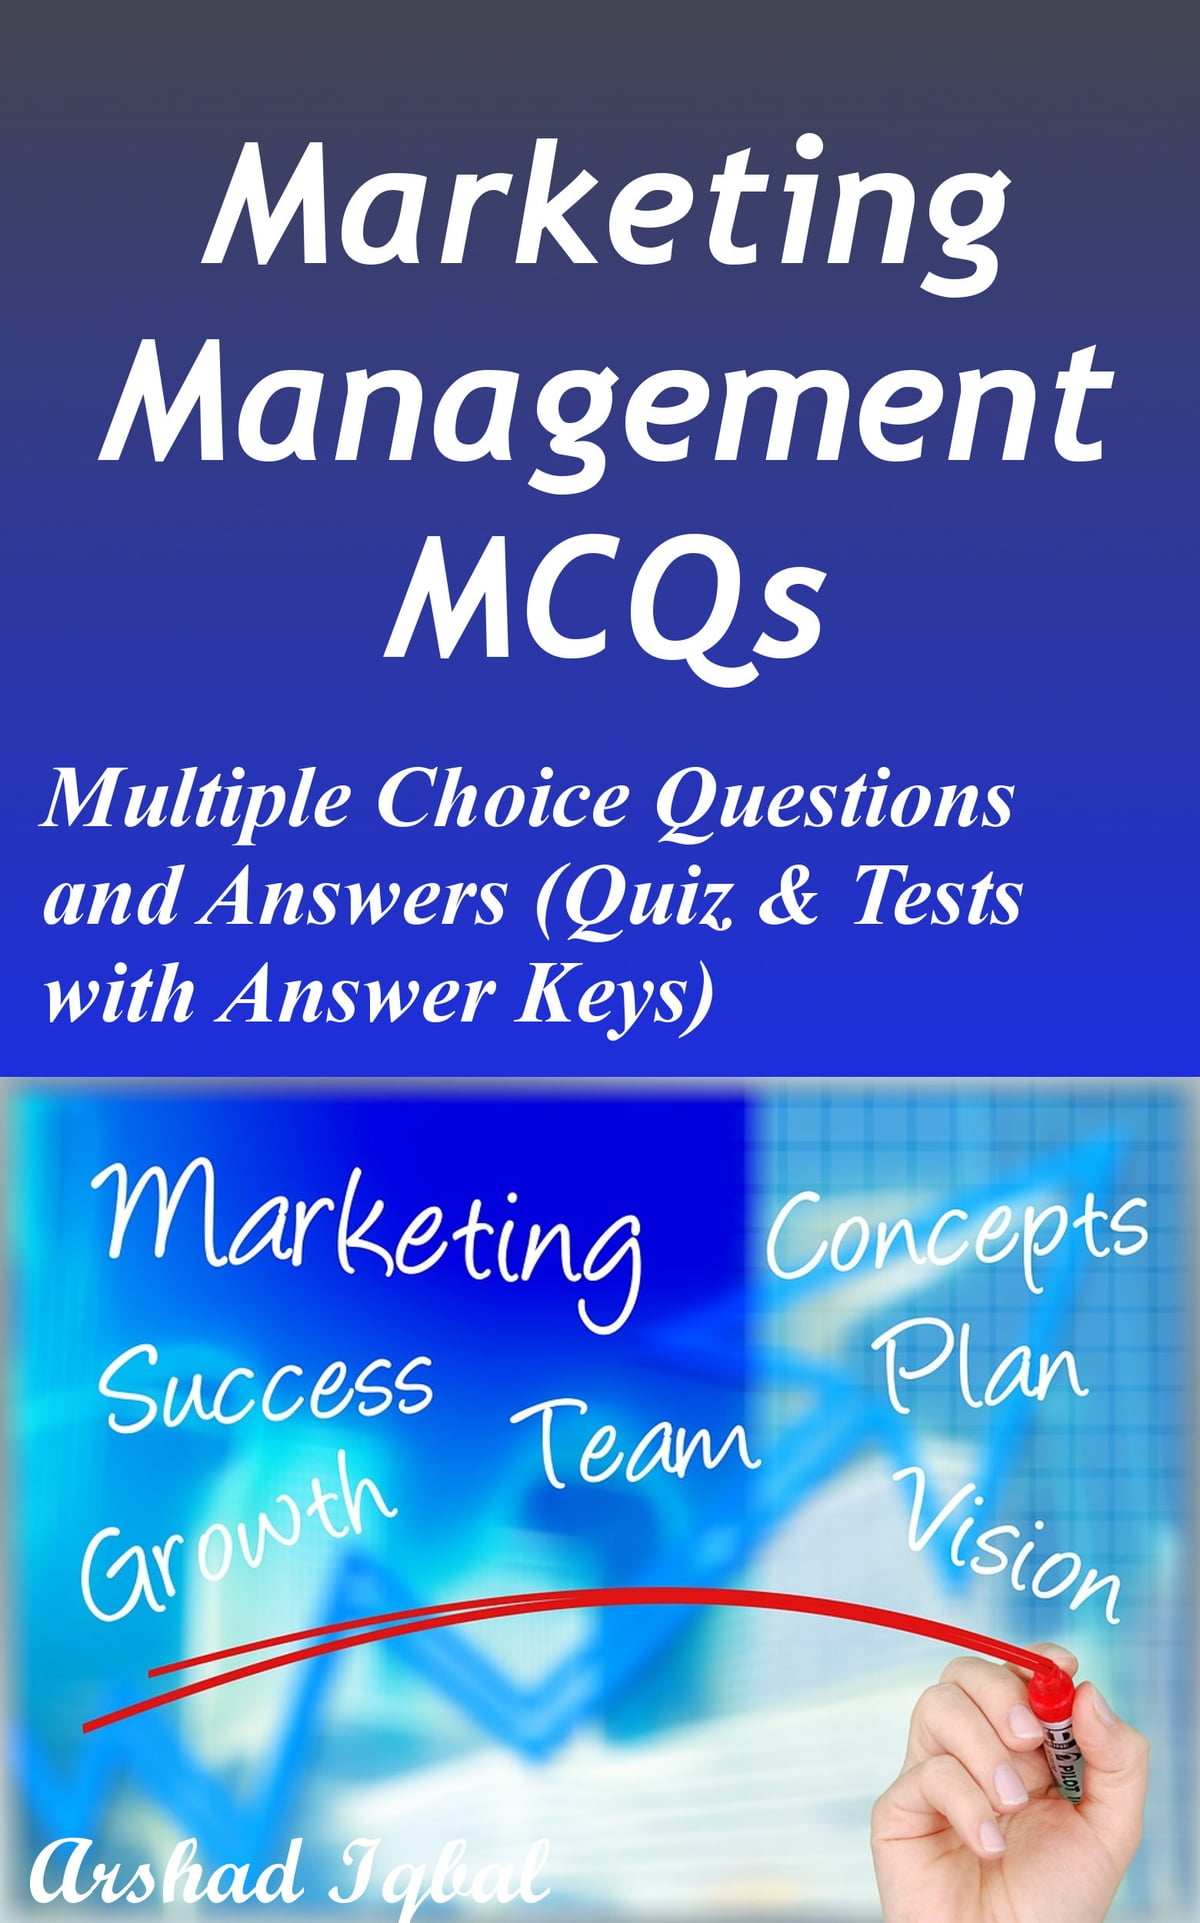 Human resource management mcqs multiple choice questions and marketing management mcqs multiple choice questions and answers quiz tests with answer keys fandeluxe Image collections